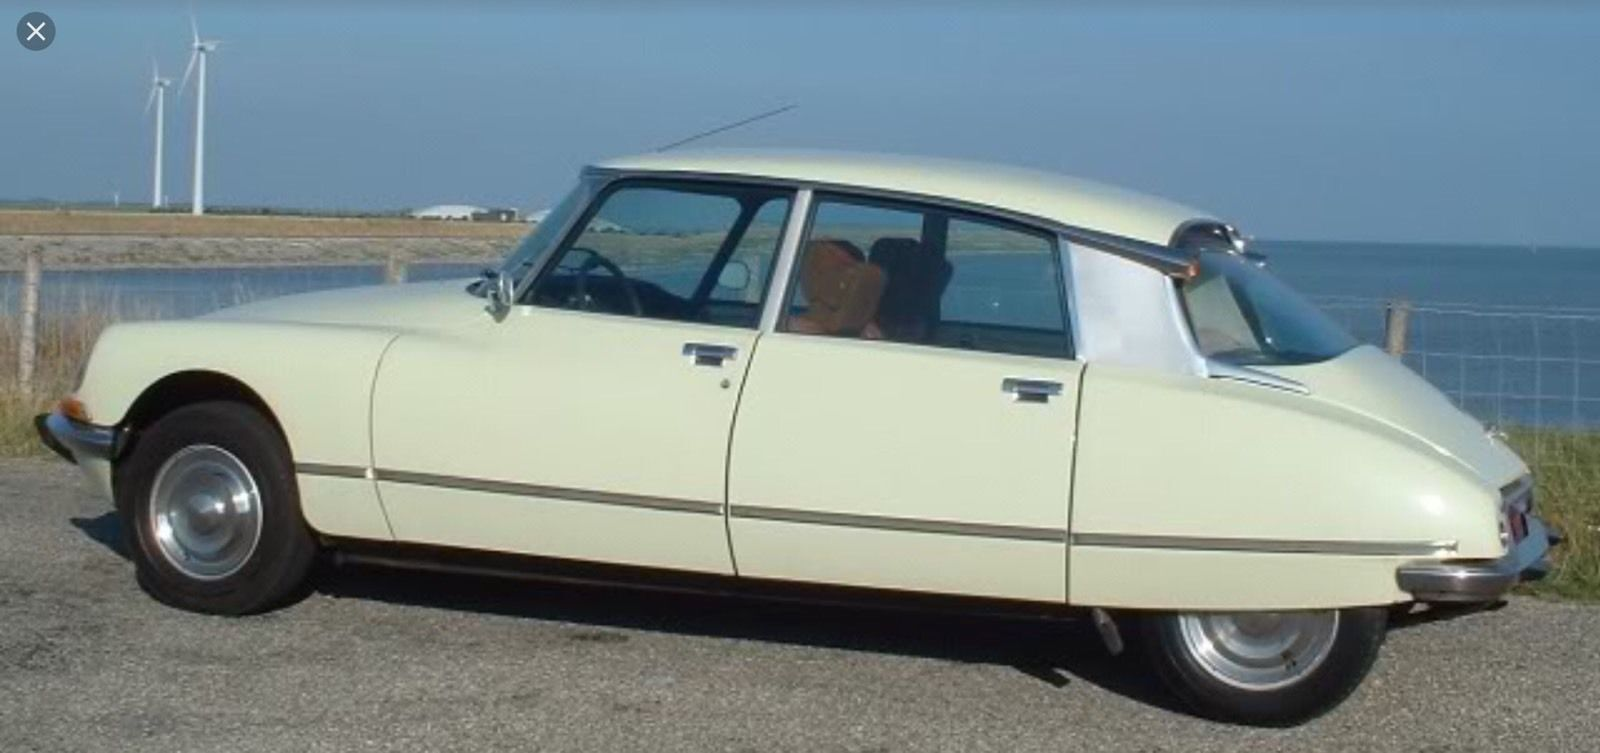 1 18 Norev Citroen DS 23 ds23 Pallas 1972 Ivory spécial Model Limited 1000 Pcs